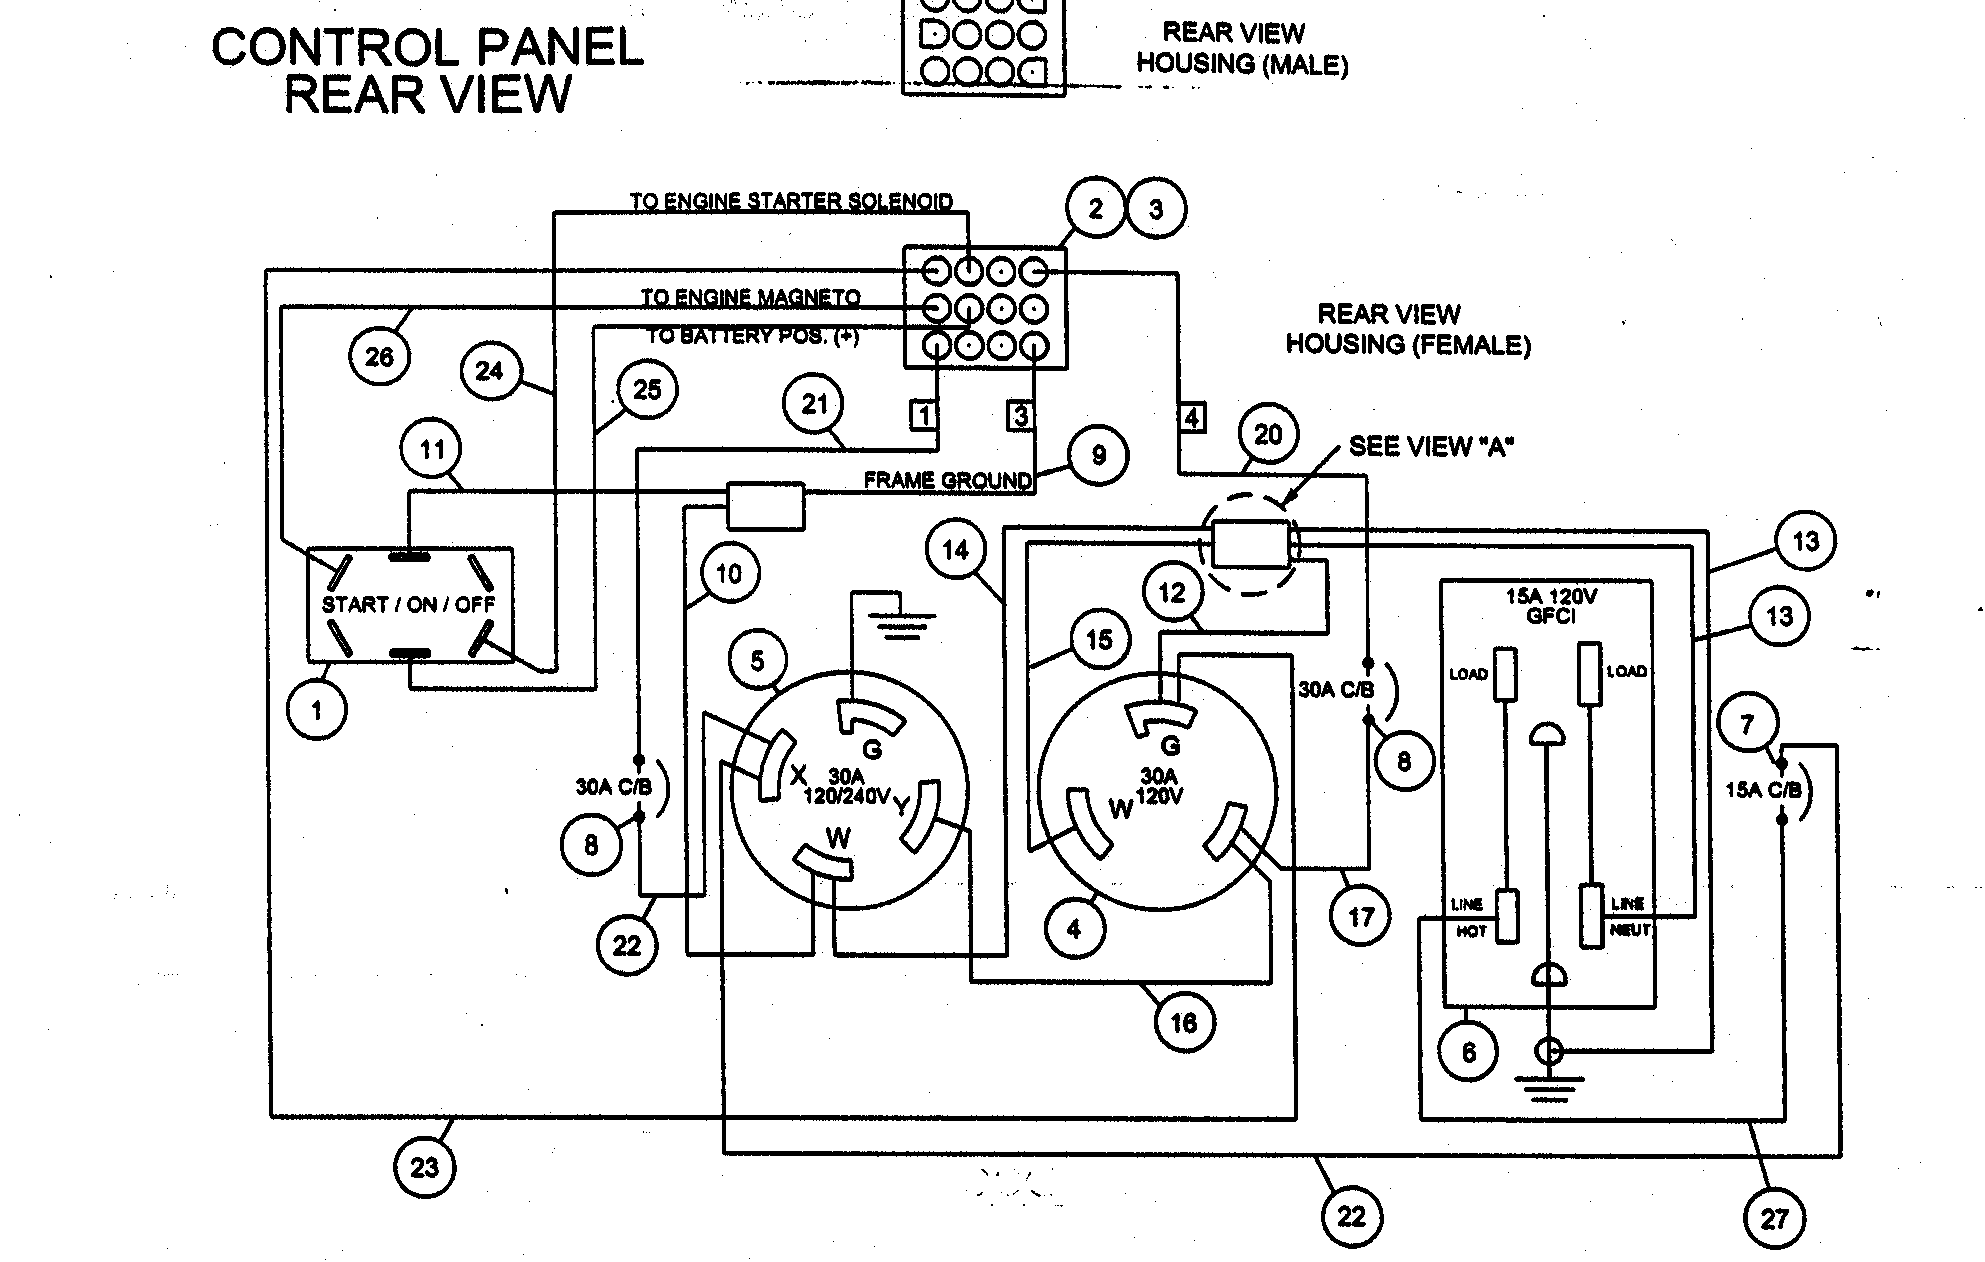 craftsman generator wiring diagram schema wiring diagram looking for craftsman model 919670070 generator repair replacement [ 1985 x 1262 Pixel ]